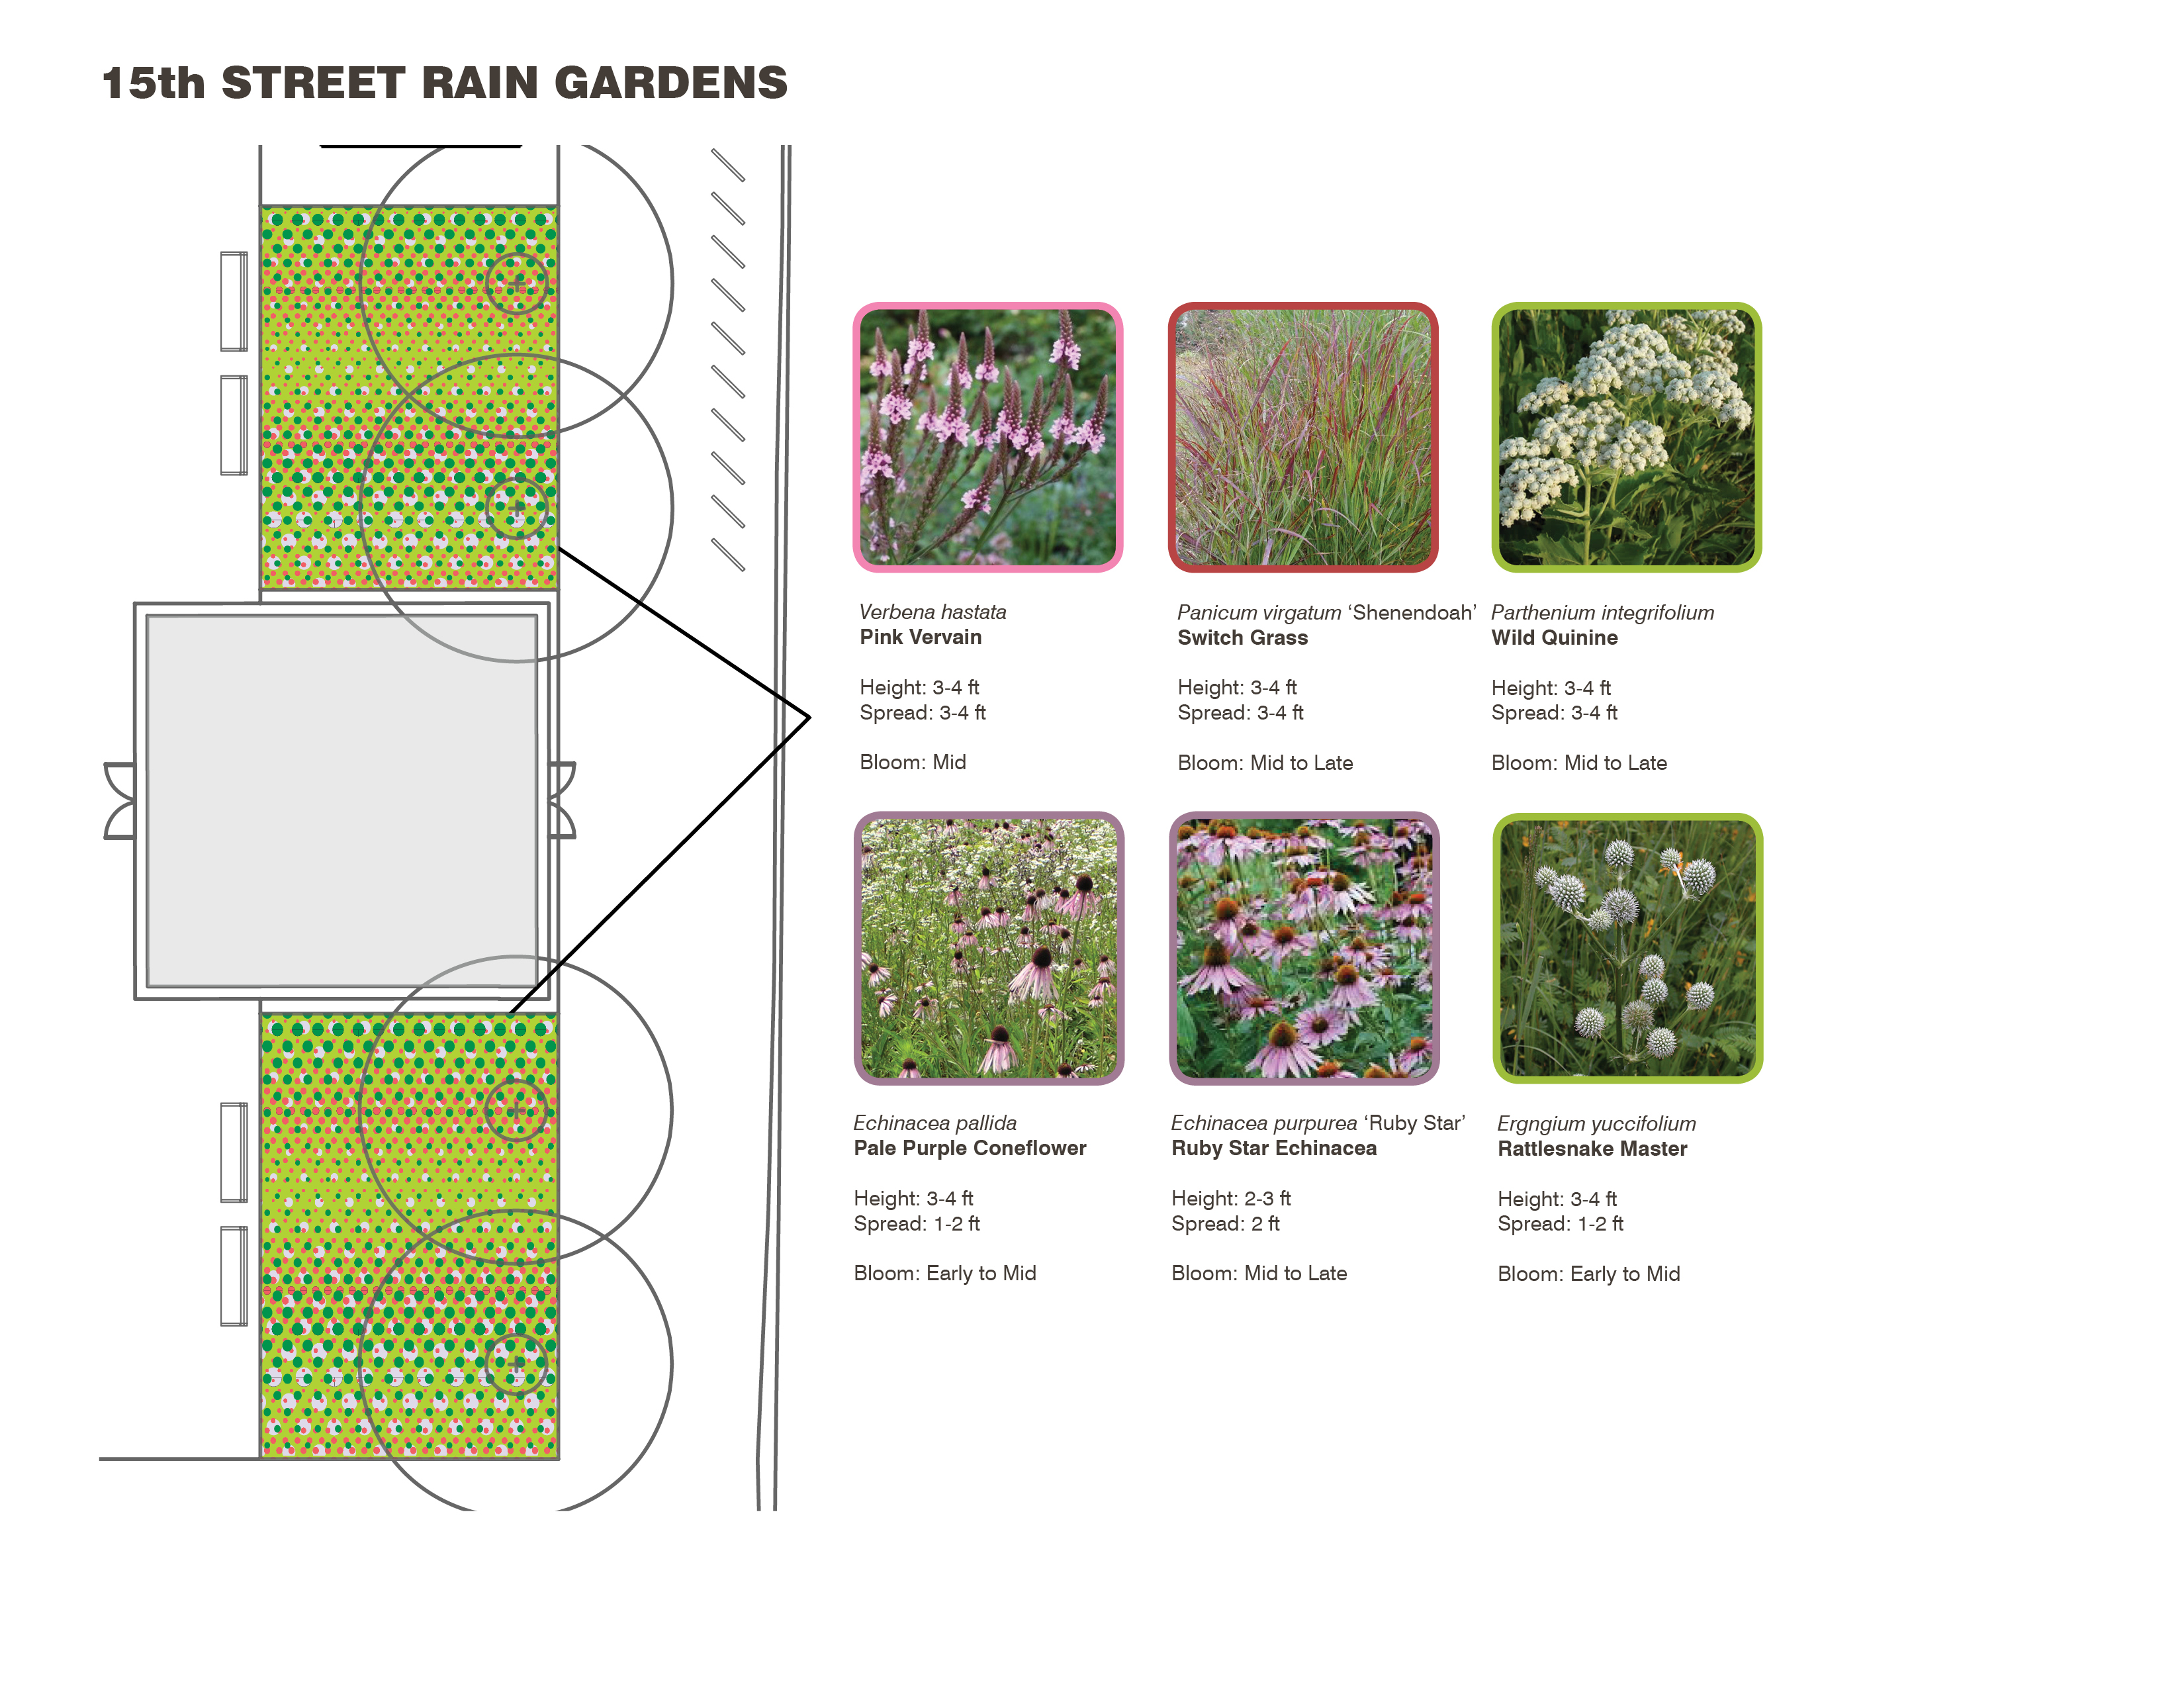 Rain Garden planting plan of LOVE Park / JFK Plaza, October 2015 | Hargreaves